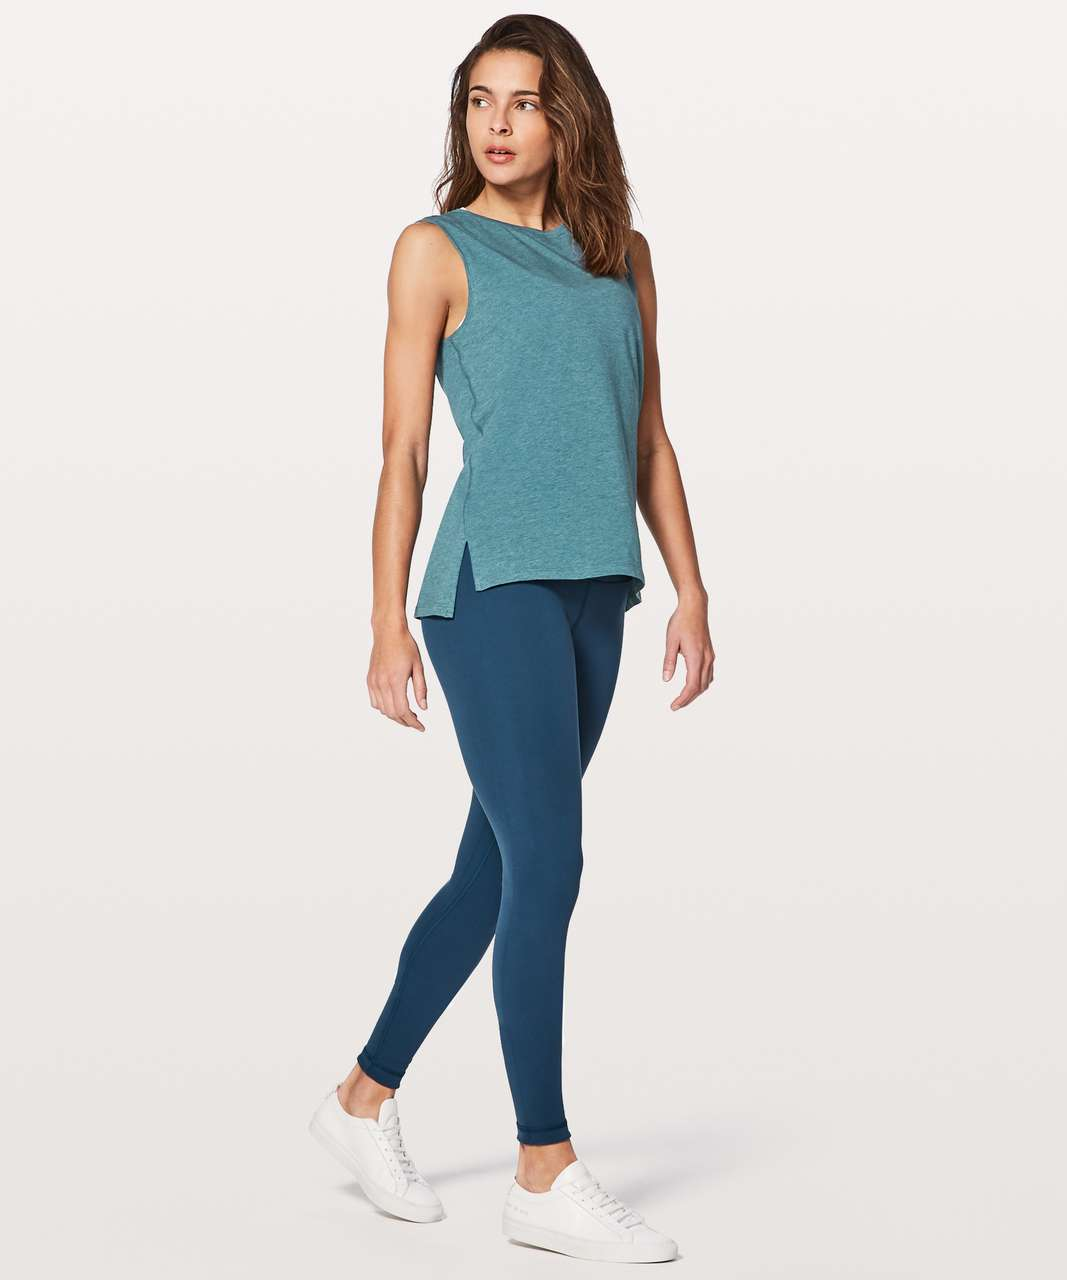 Lululemon Love Sleeveless Tank - Heathered Shipmate